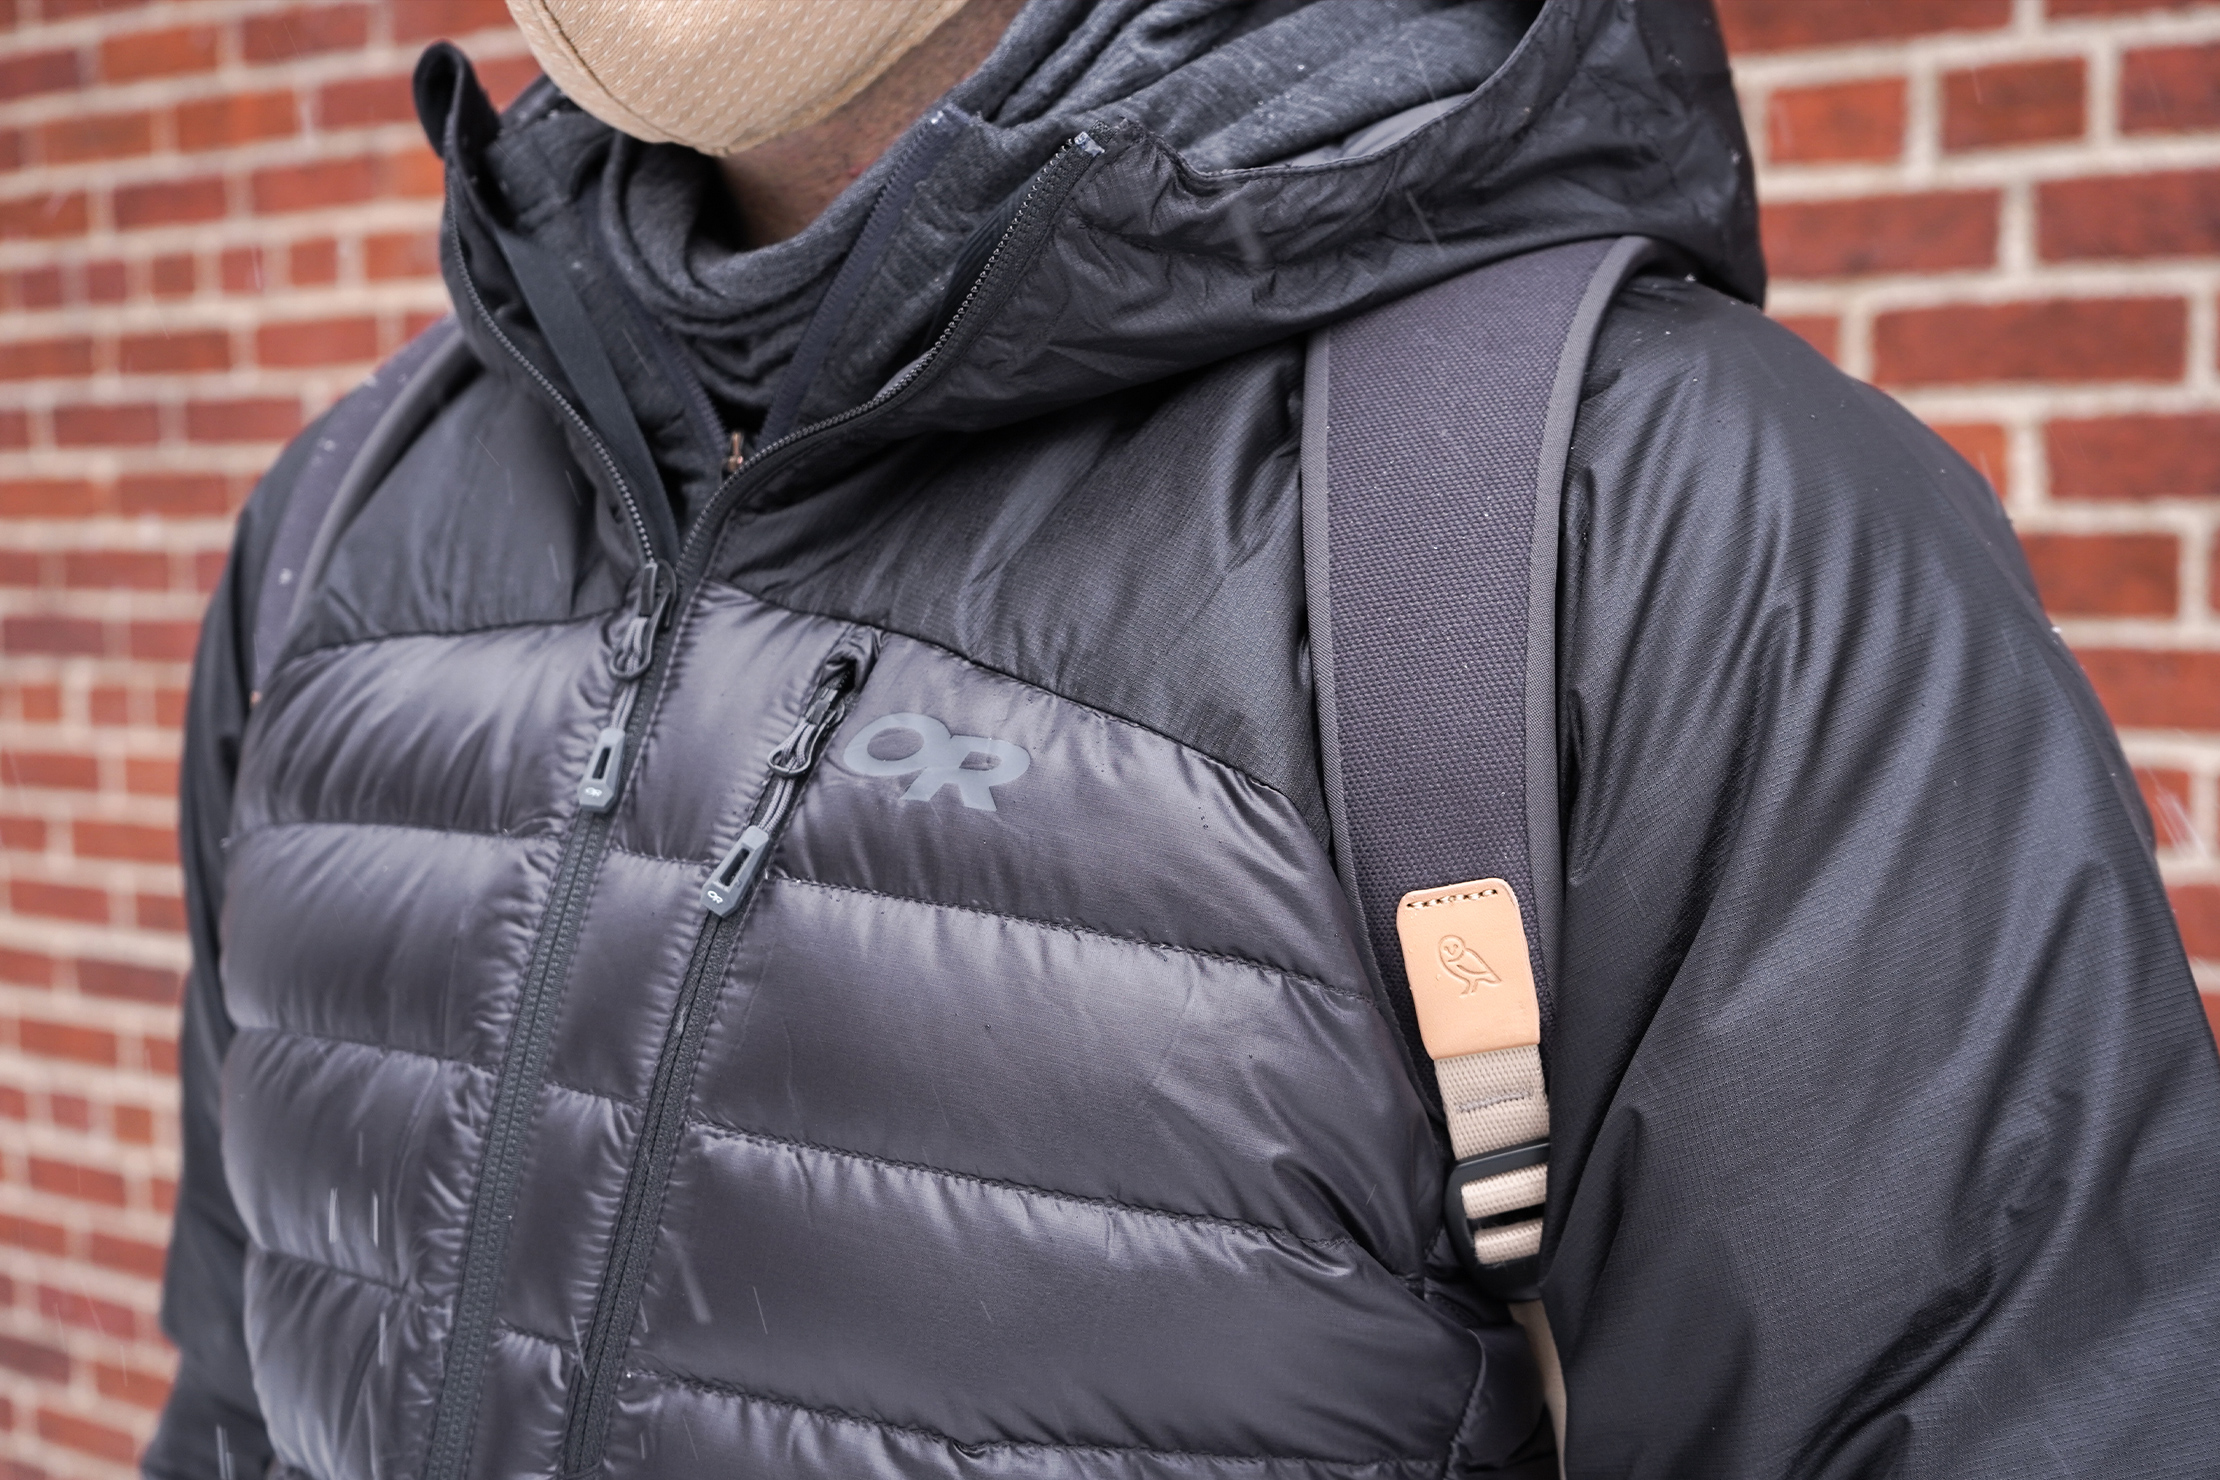 Bellroy Transit Workpack | The hardware is functional and blends in with the styling